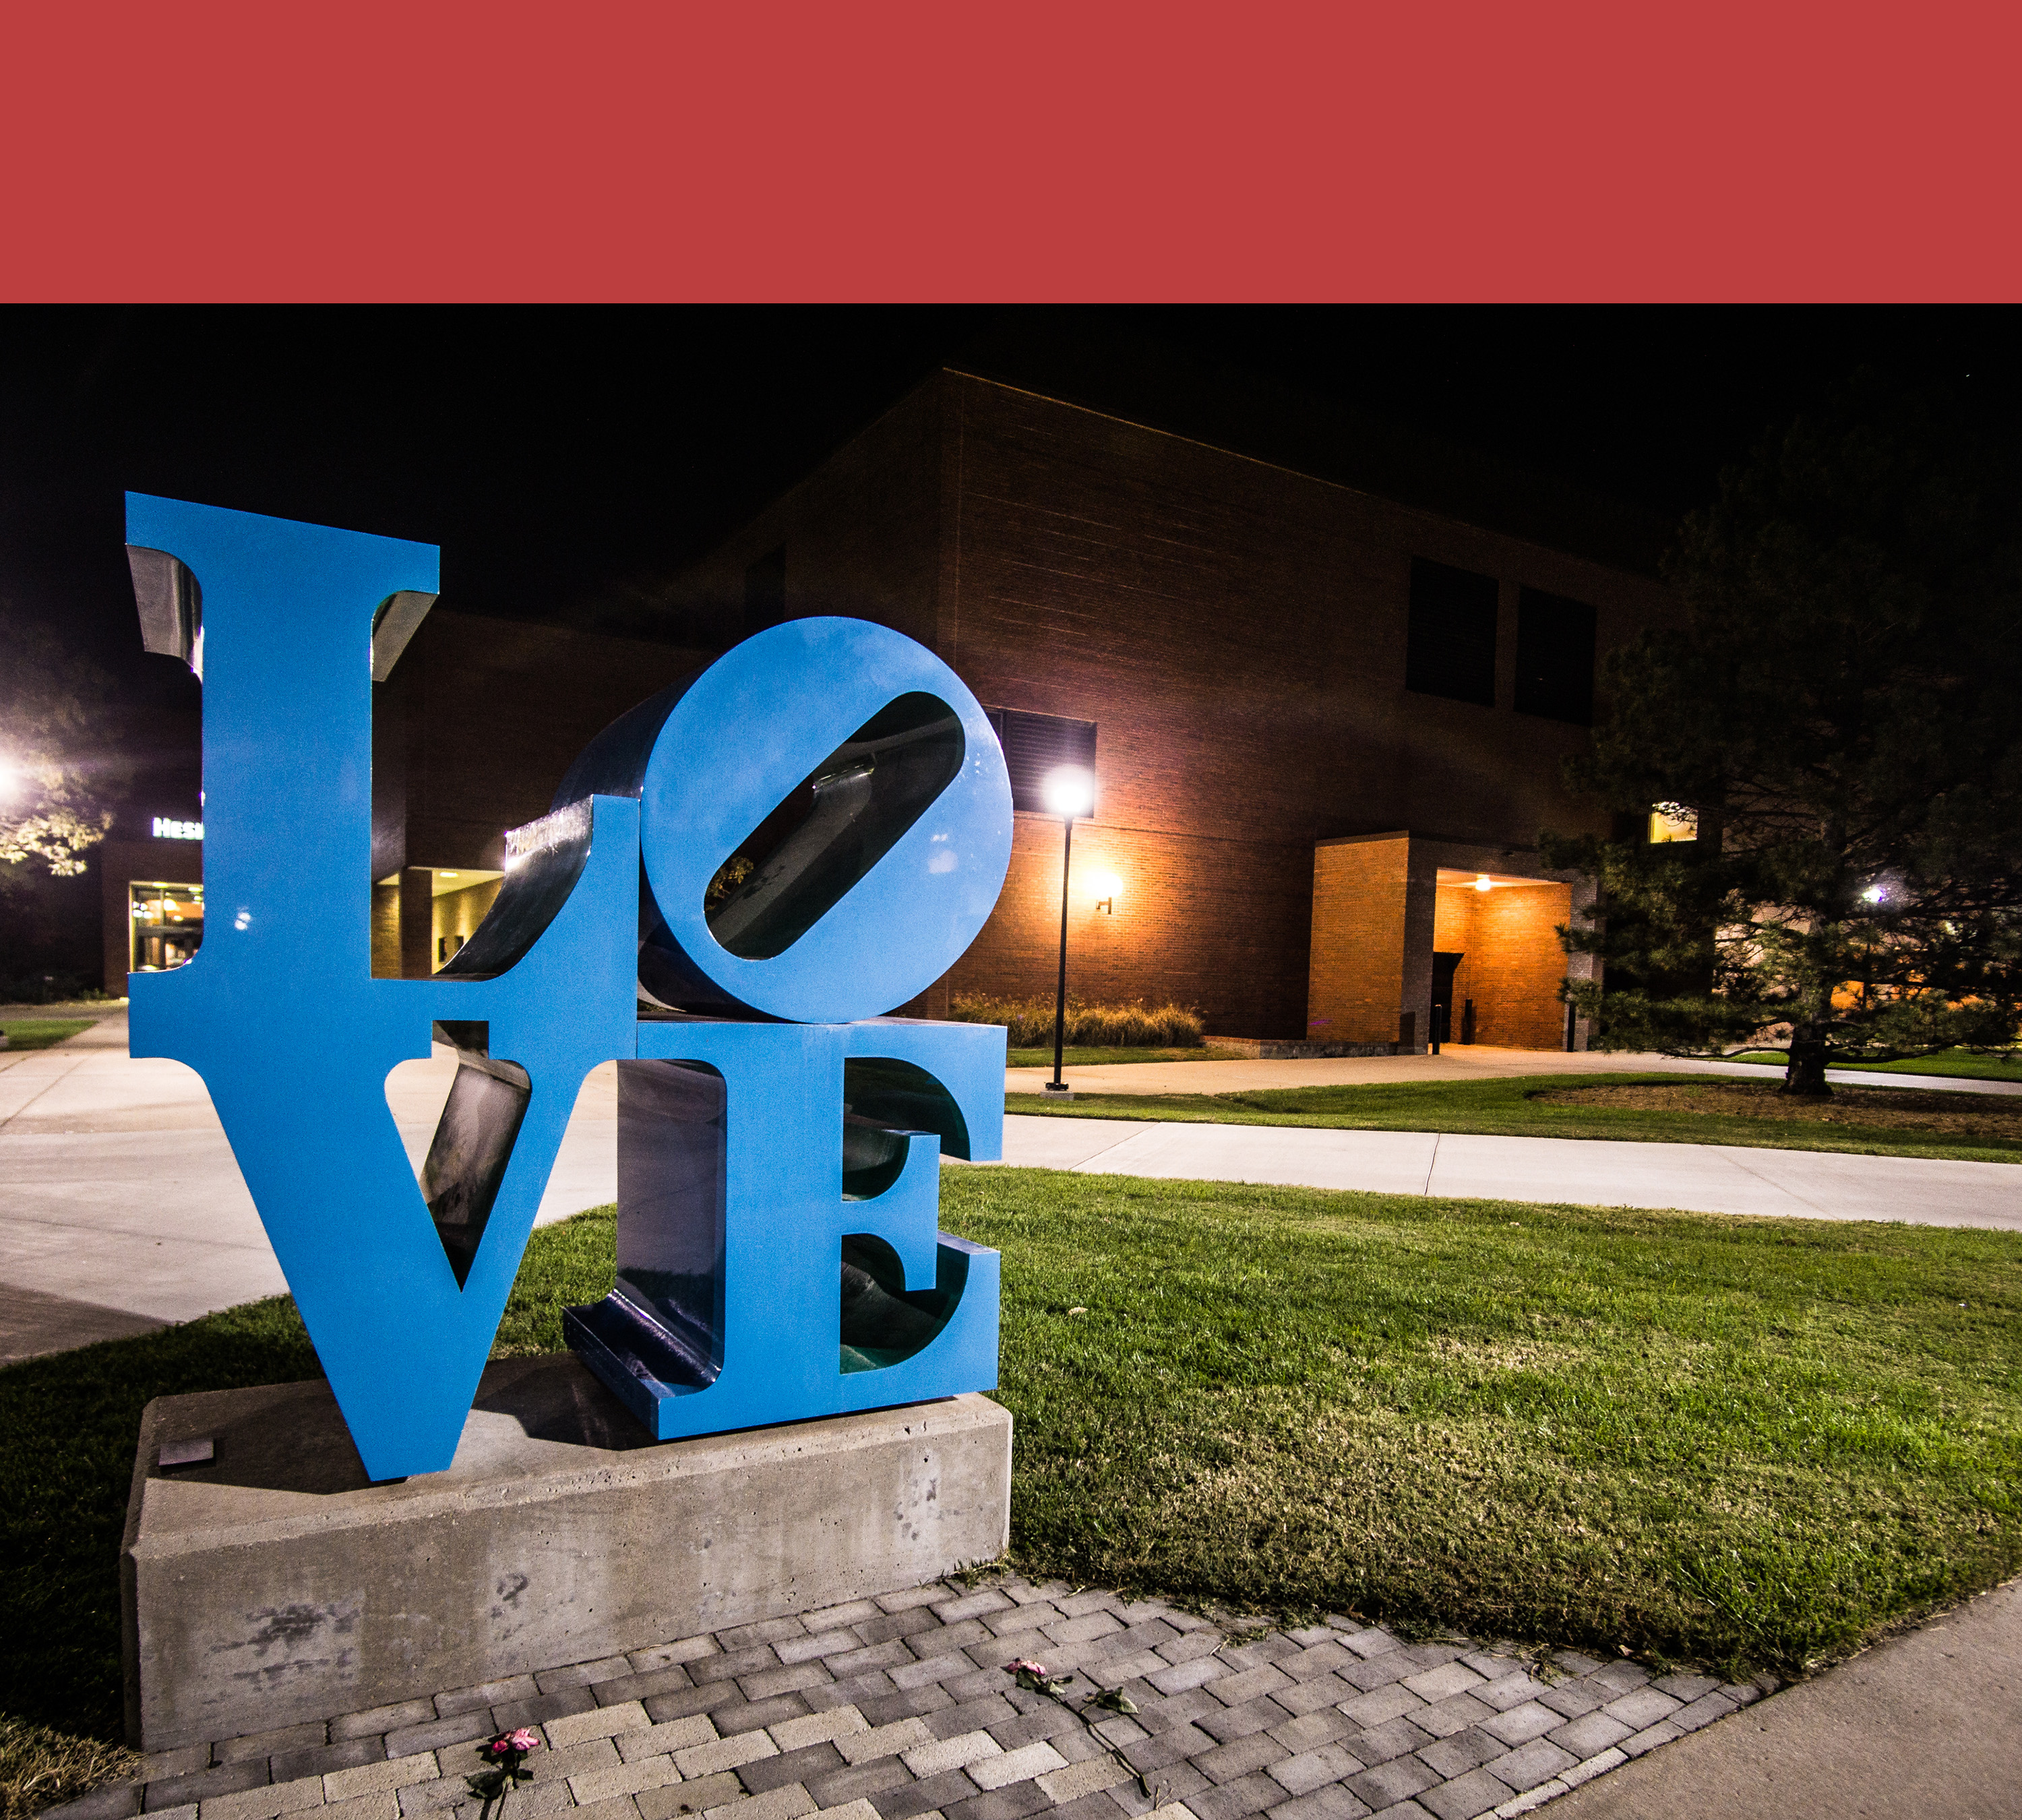 shot of the LOVE artwork sculpture outside of the Heskett Center. it is dark and the lightpoles are lit up.